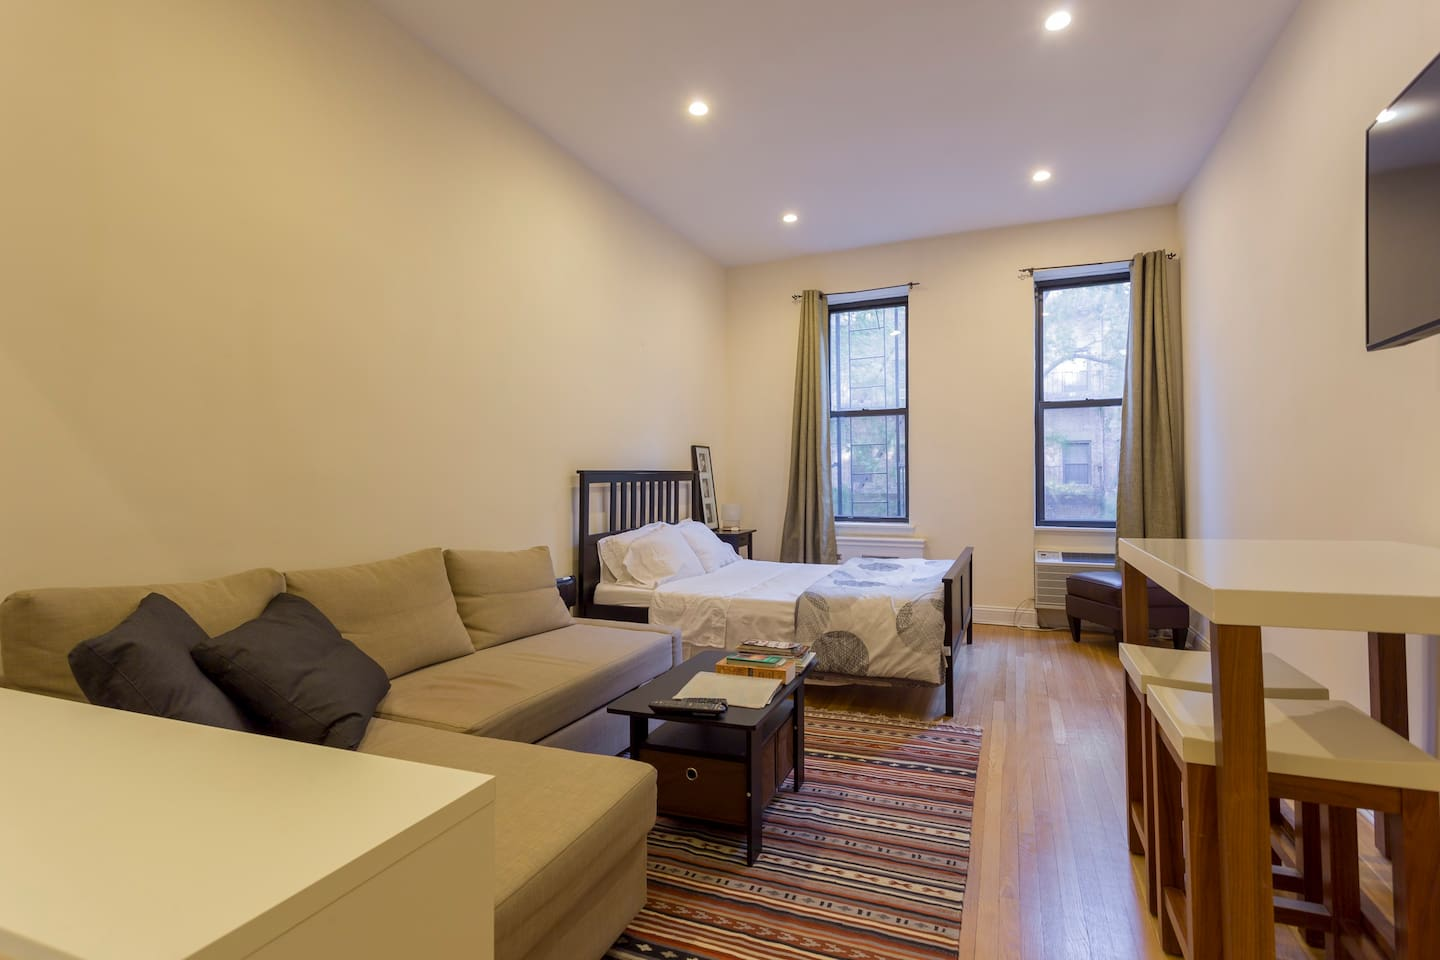 private furnished studio apartment apartments for rent in new york